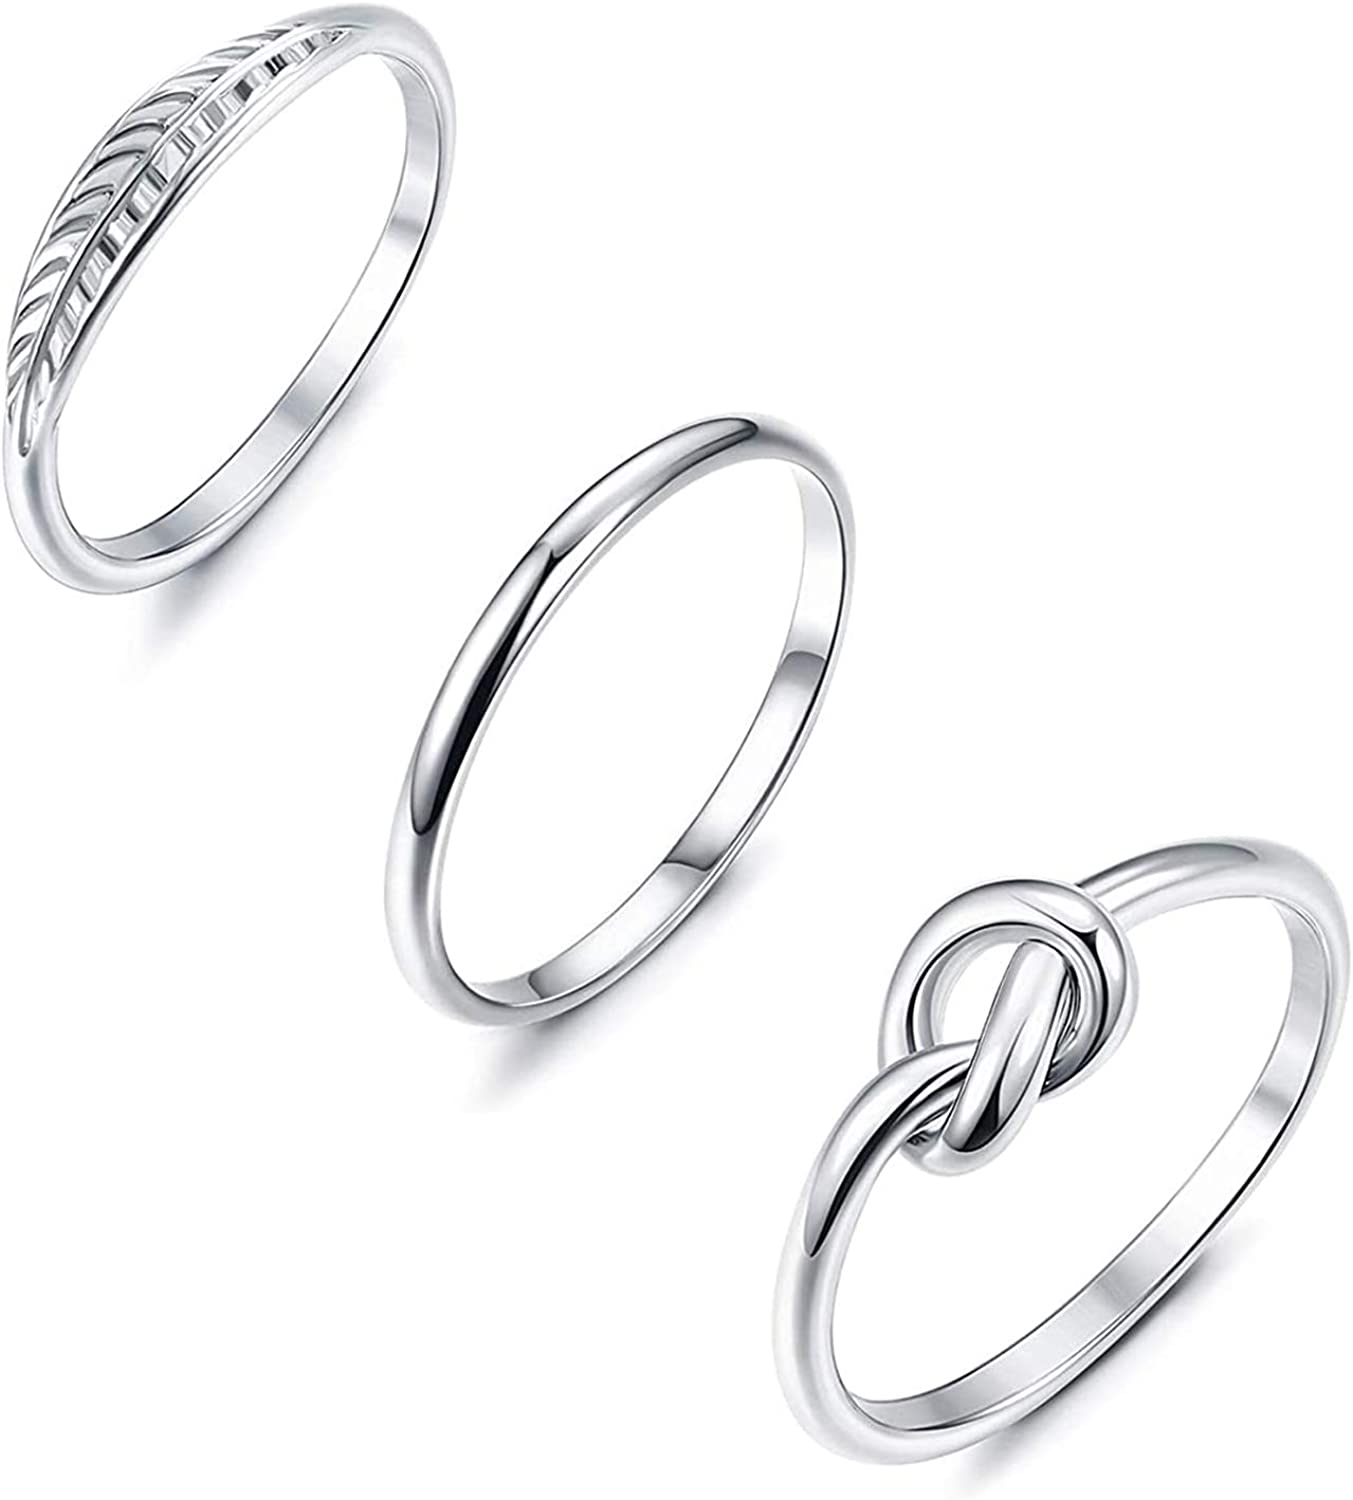 YADOCA 4 Pcs Stainless Steel Engagement Wave Ring Set for Women Knot Feather Ring Thumb Chevron Rings Stackable Cute Simple Band Size 4-12